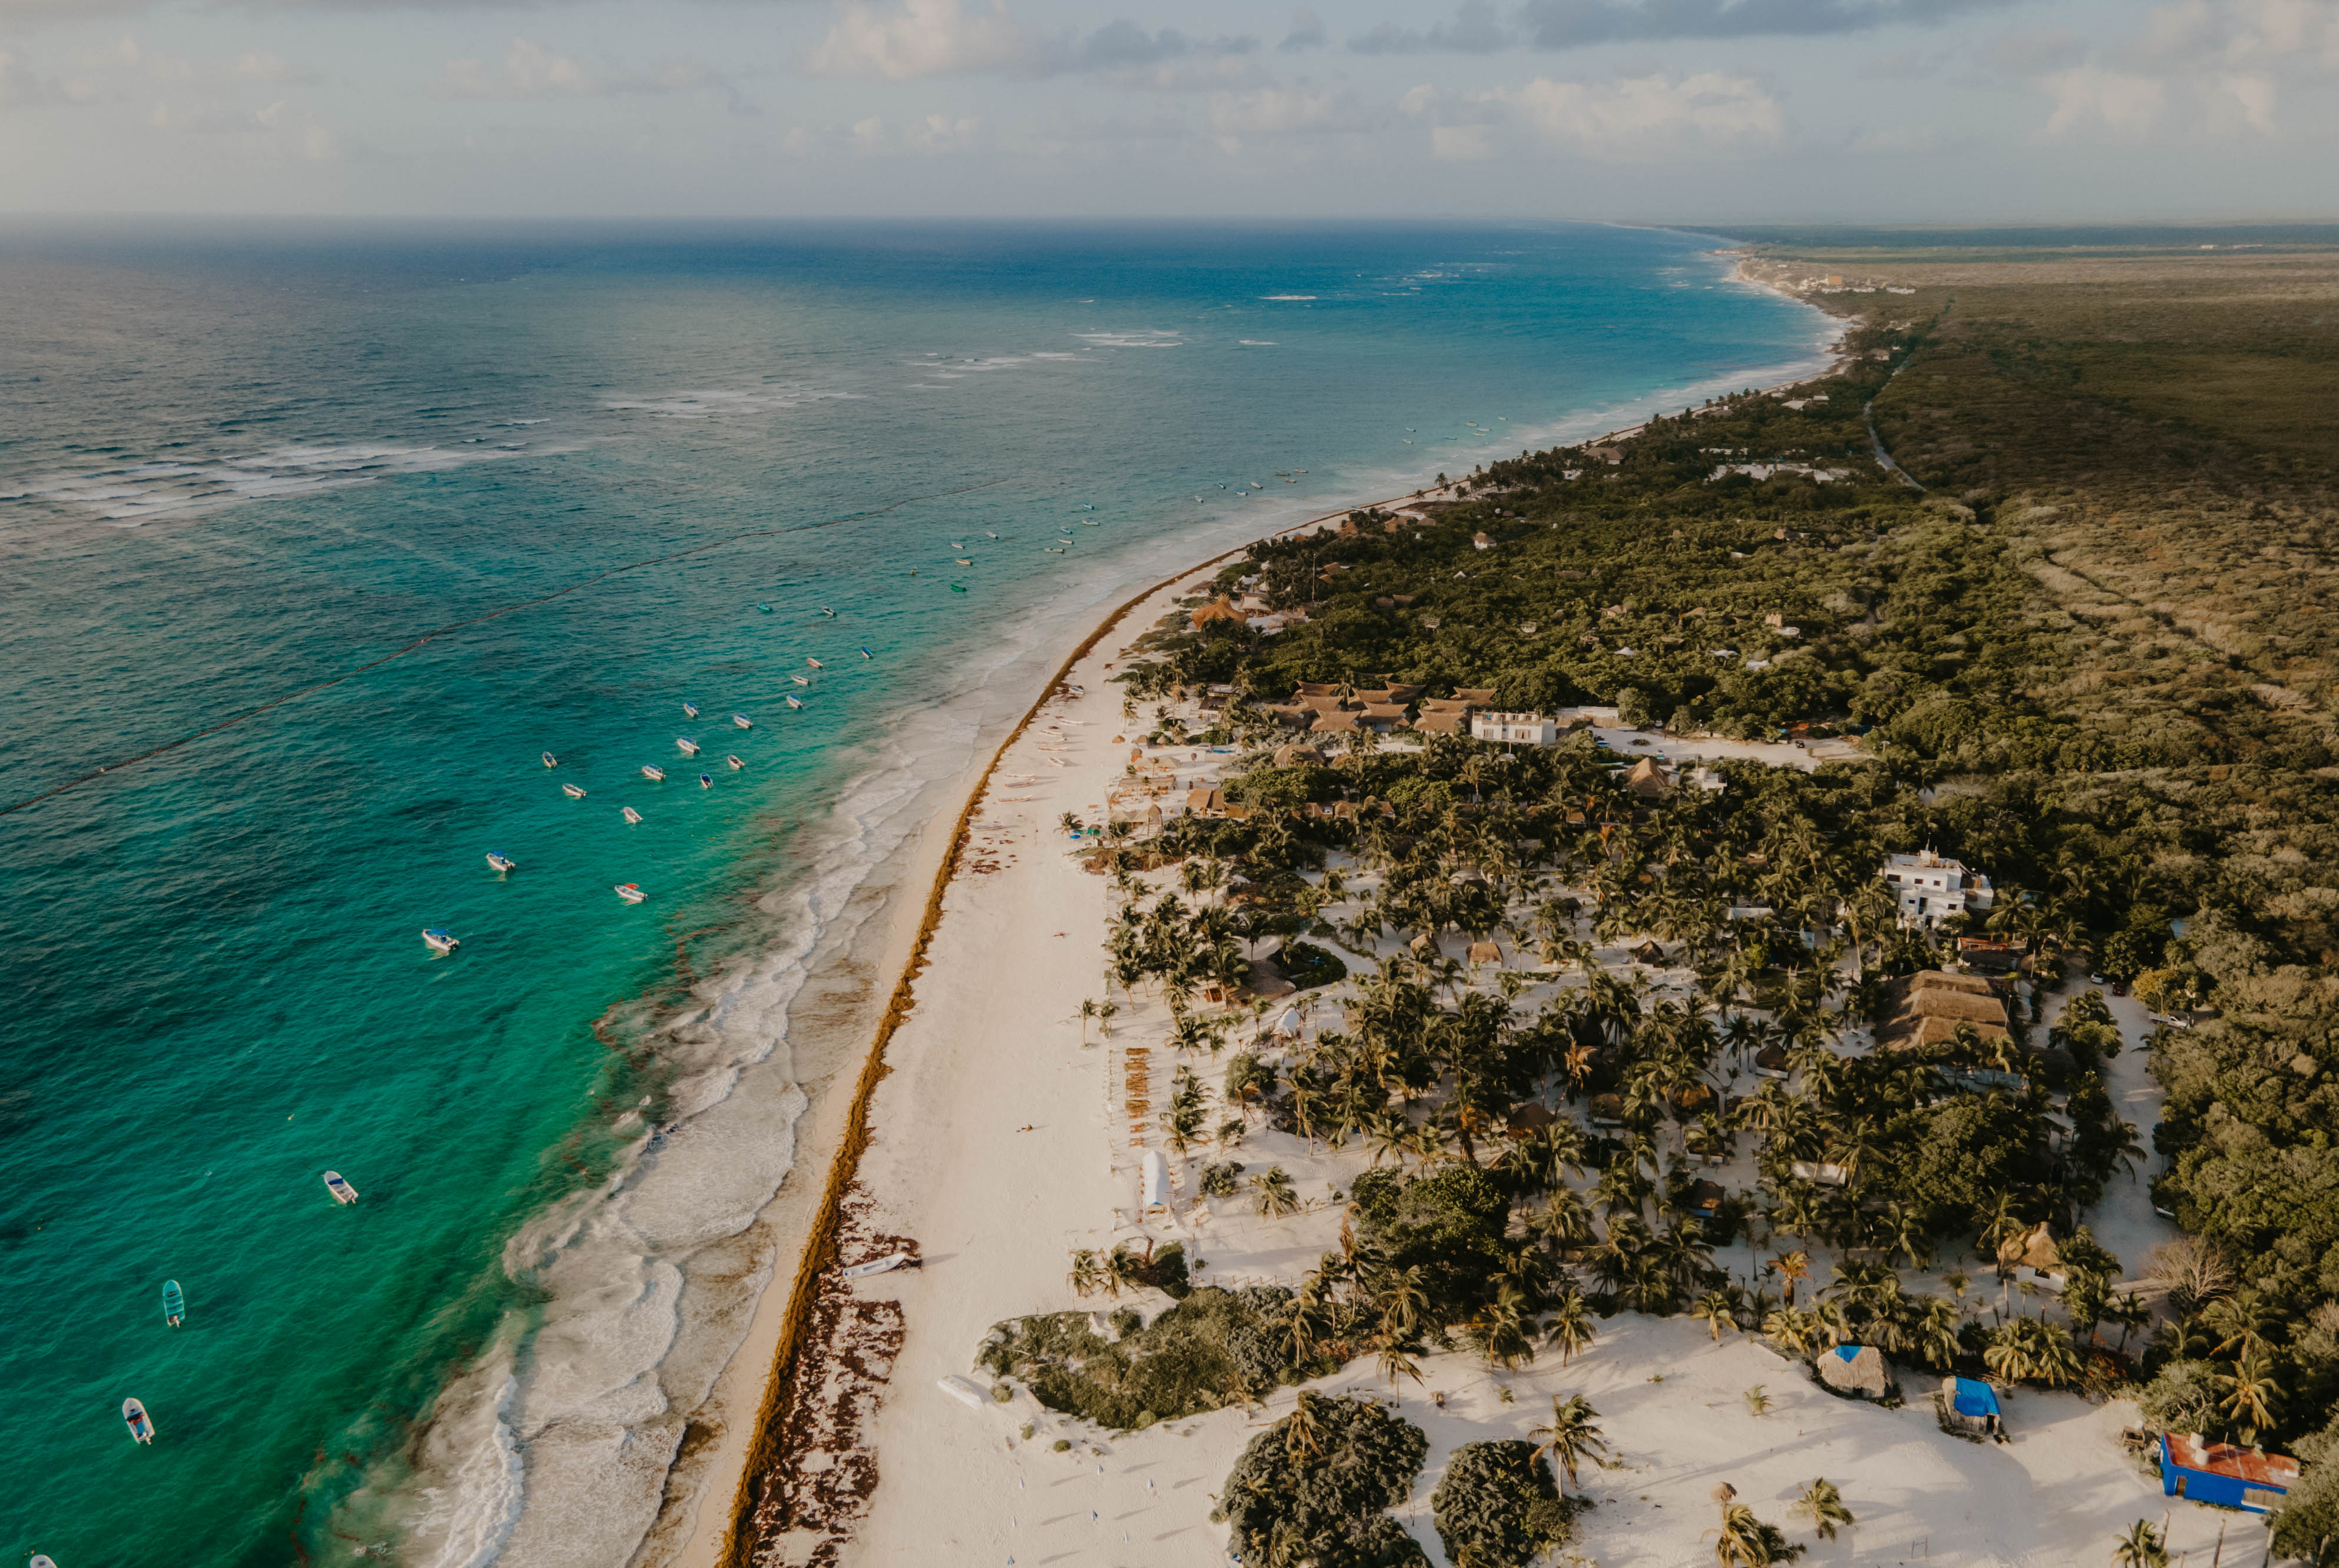 Aerial view over Tulum Beach in Mexico with the Mavric Air 2 drone.